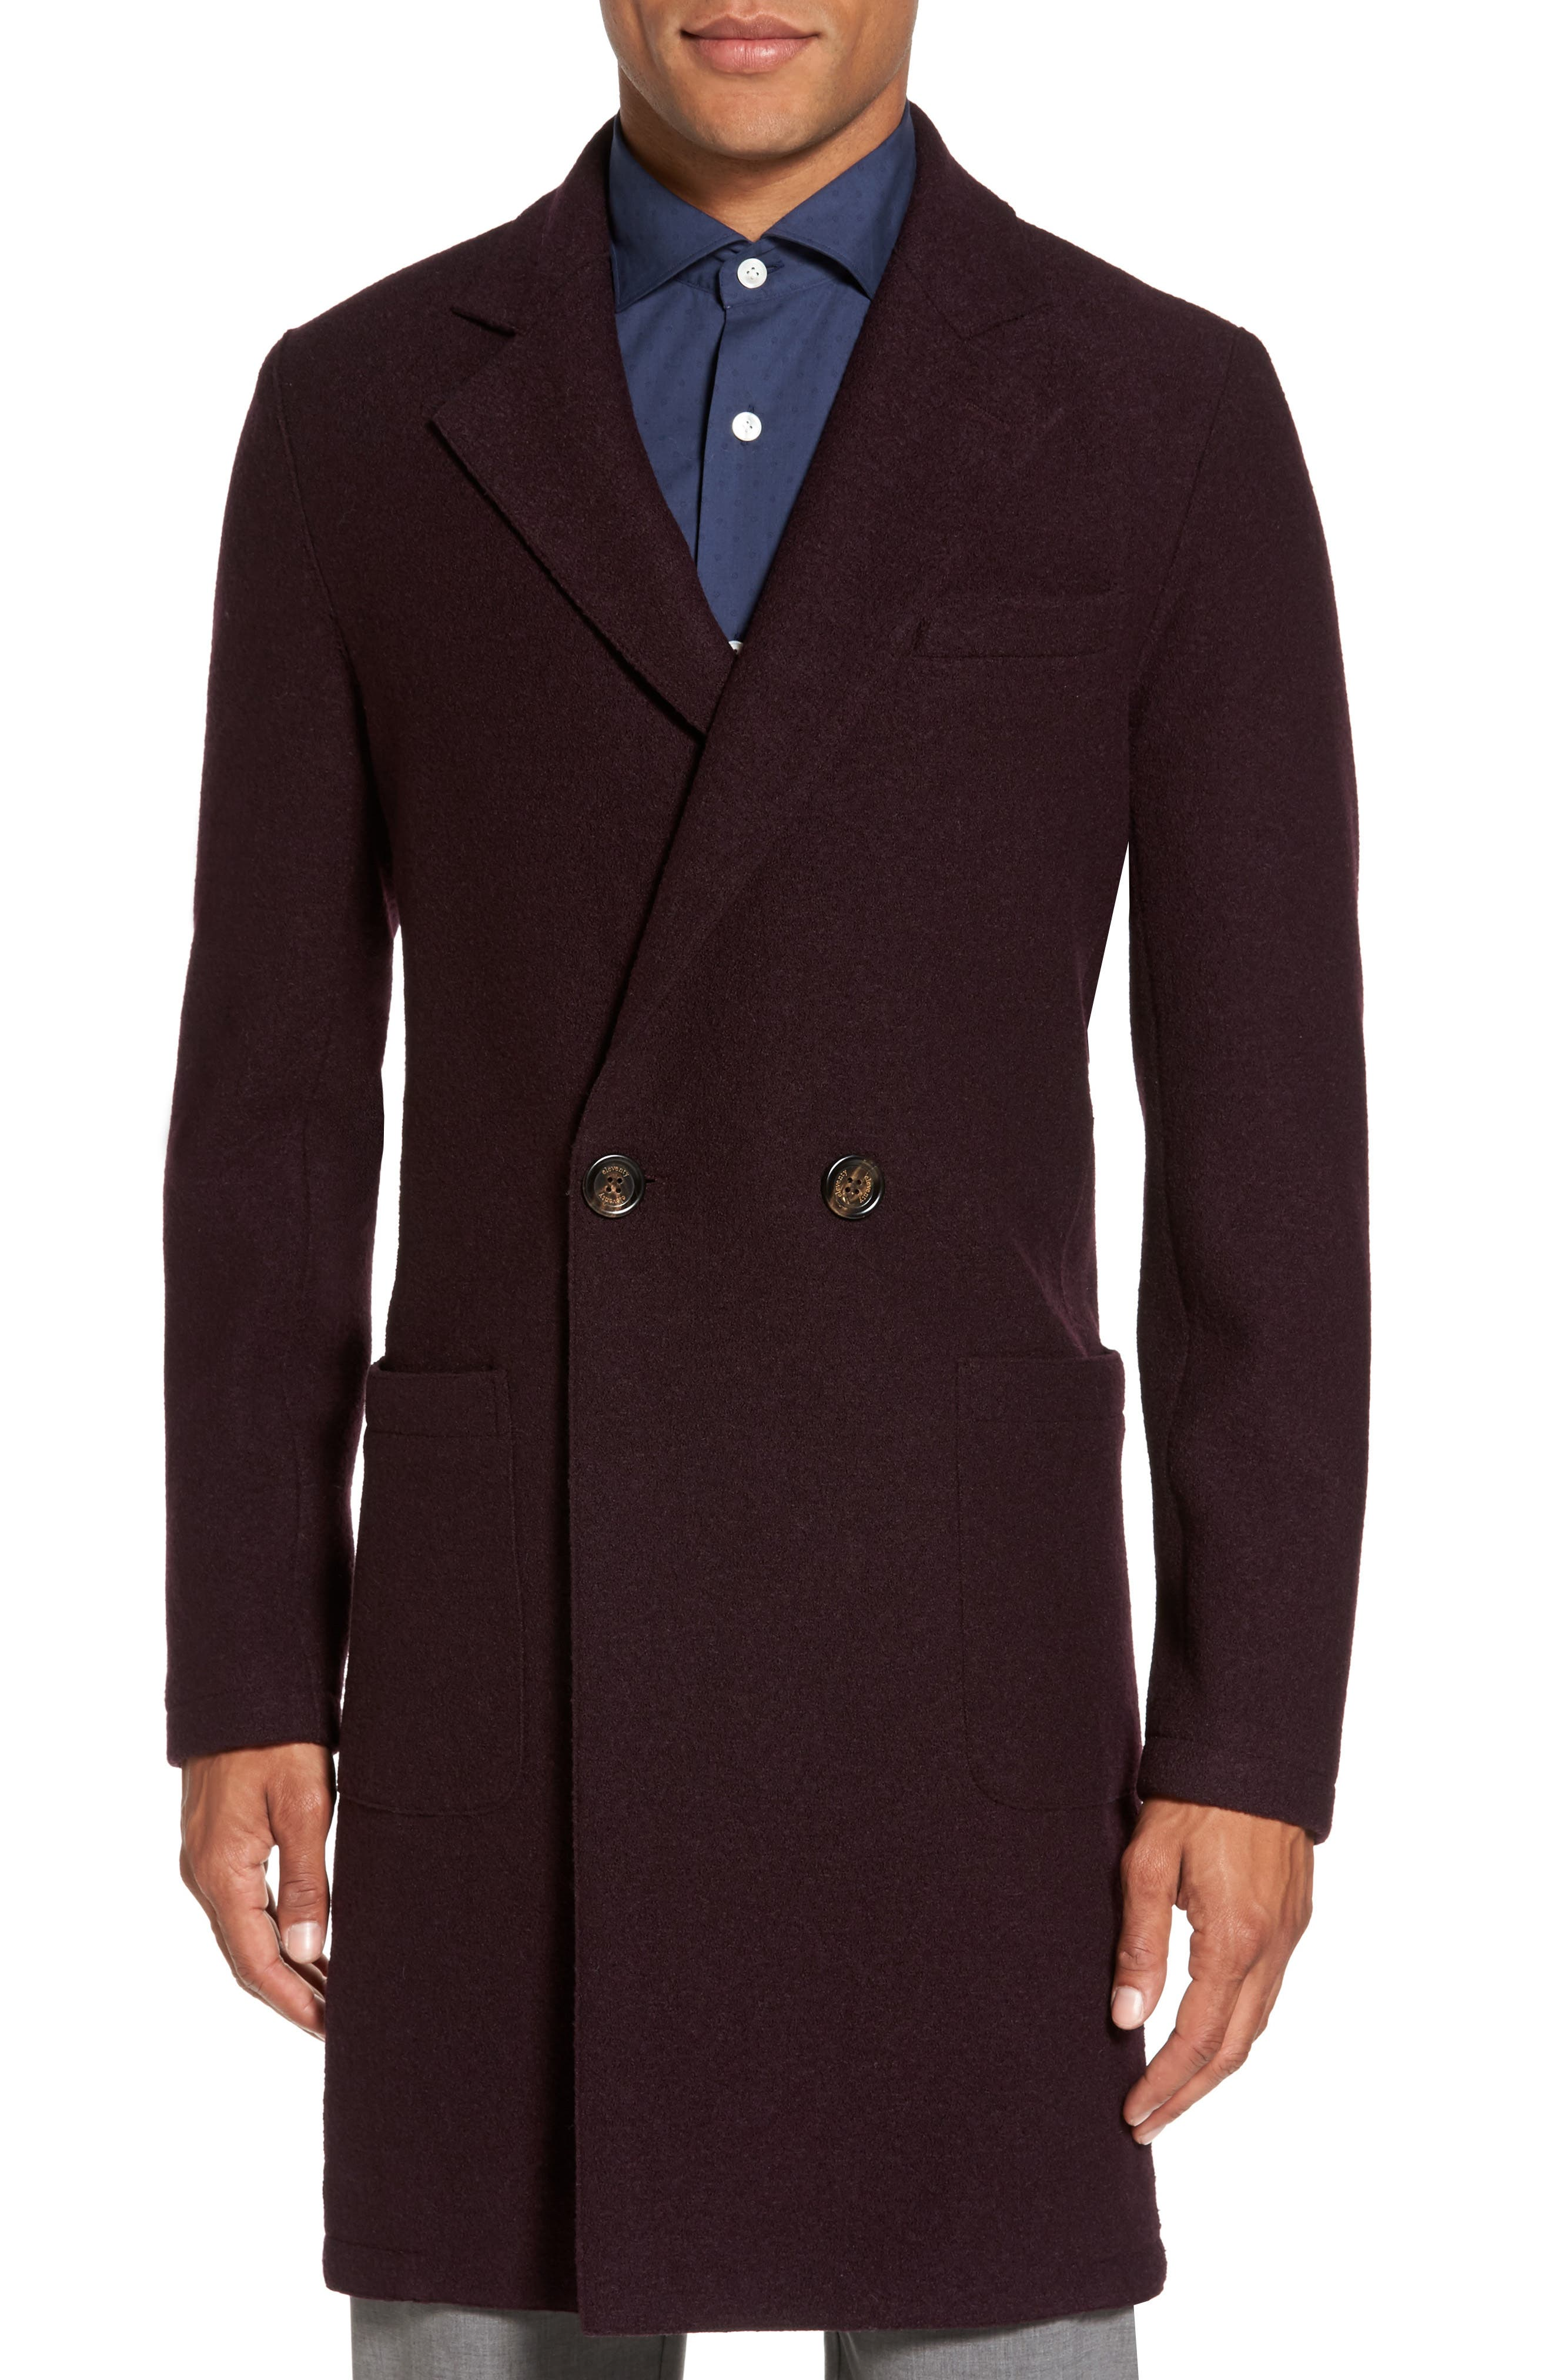 Boiled Wool Double Breasted Topcoat,                             Main thumbnail 1, color,                             930